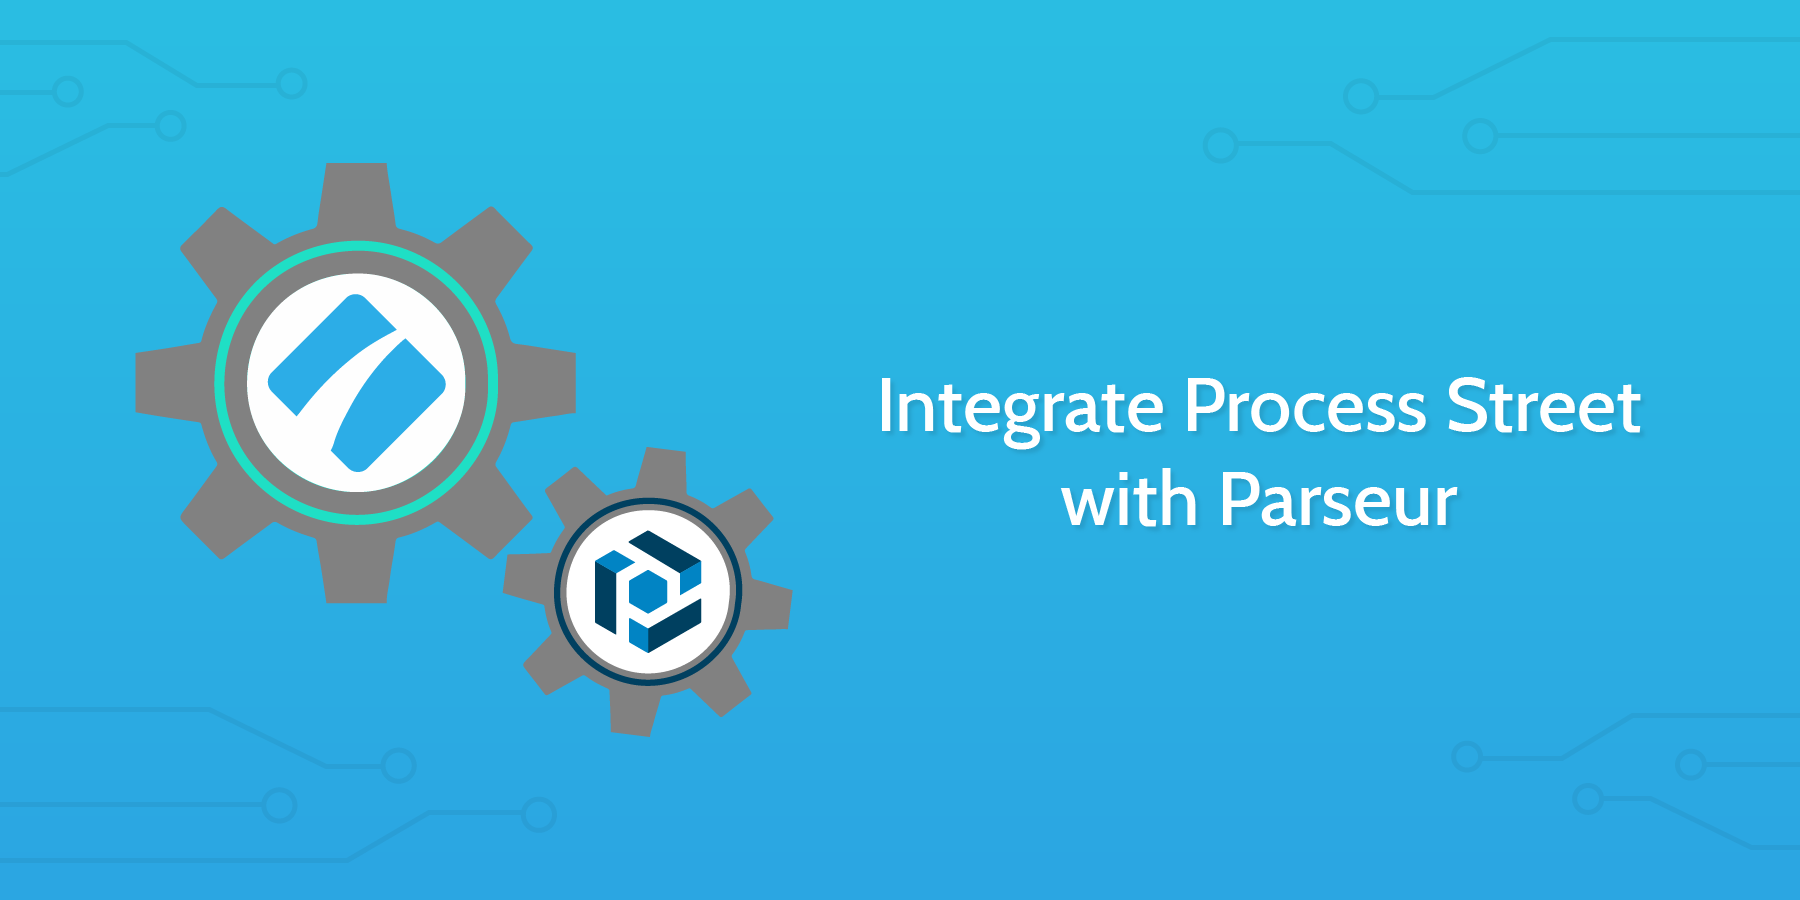 Parseur Process Street Integration